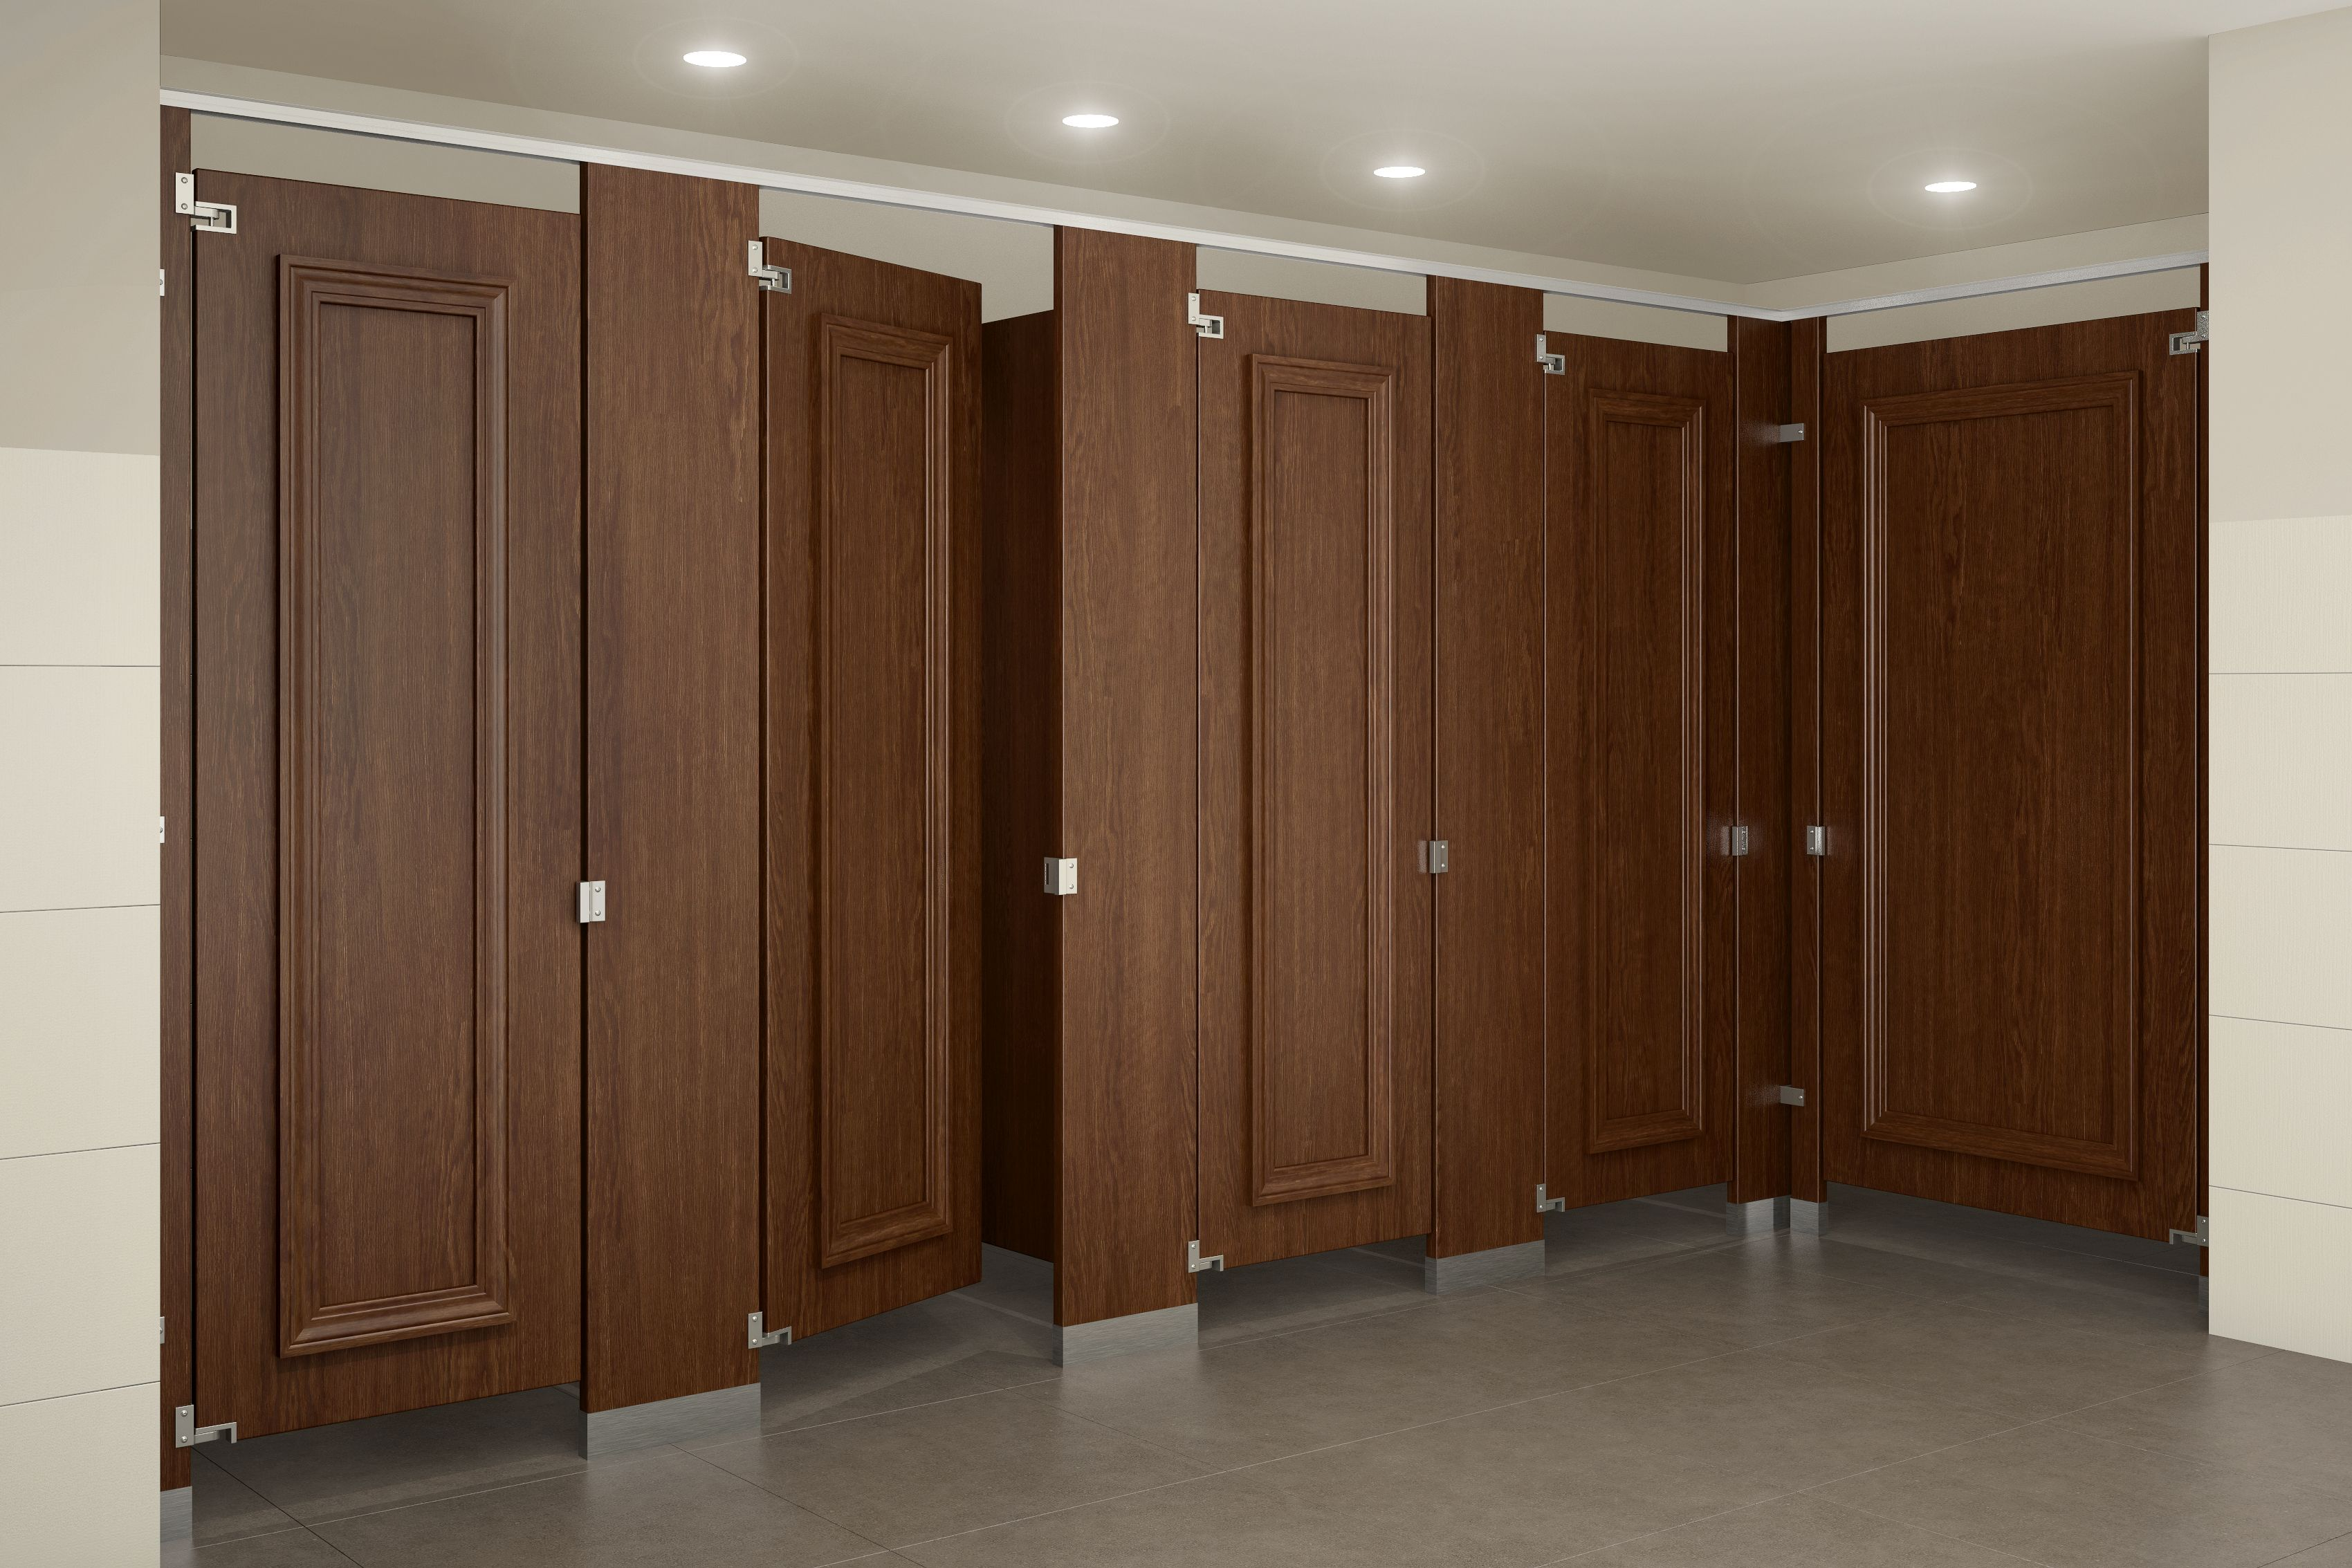 Ironwood Manufacturing wood veneer toilet partitions and doors with ...